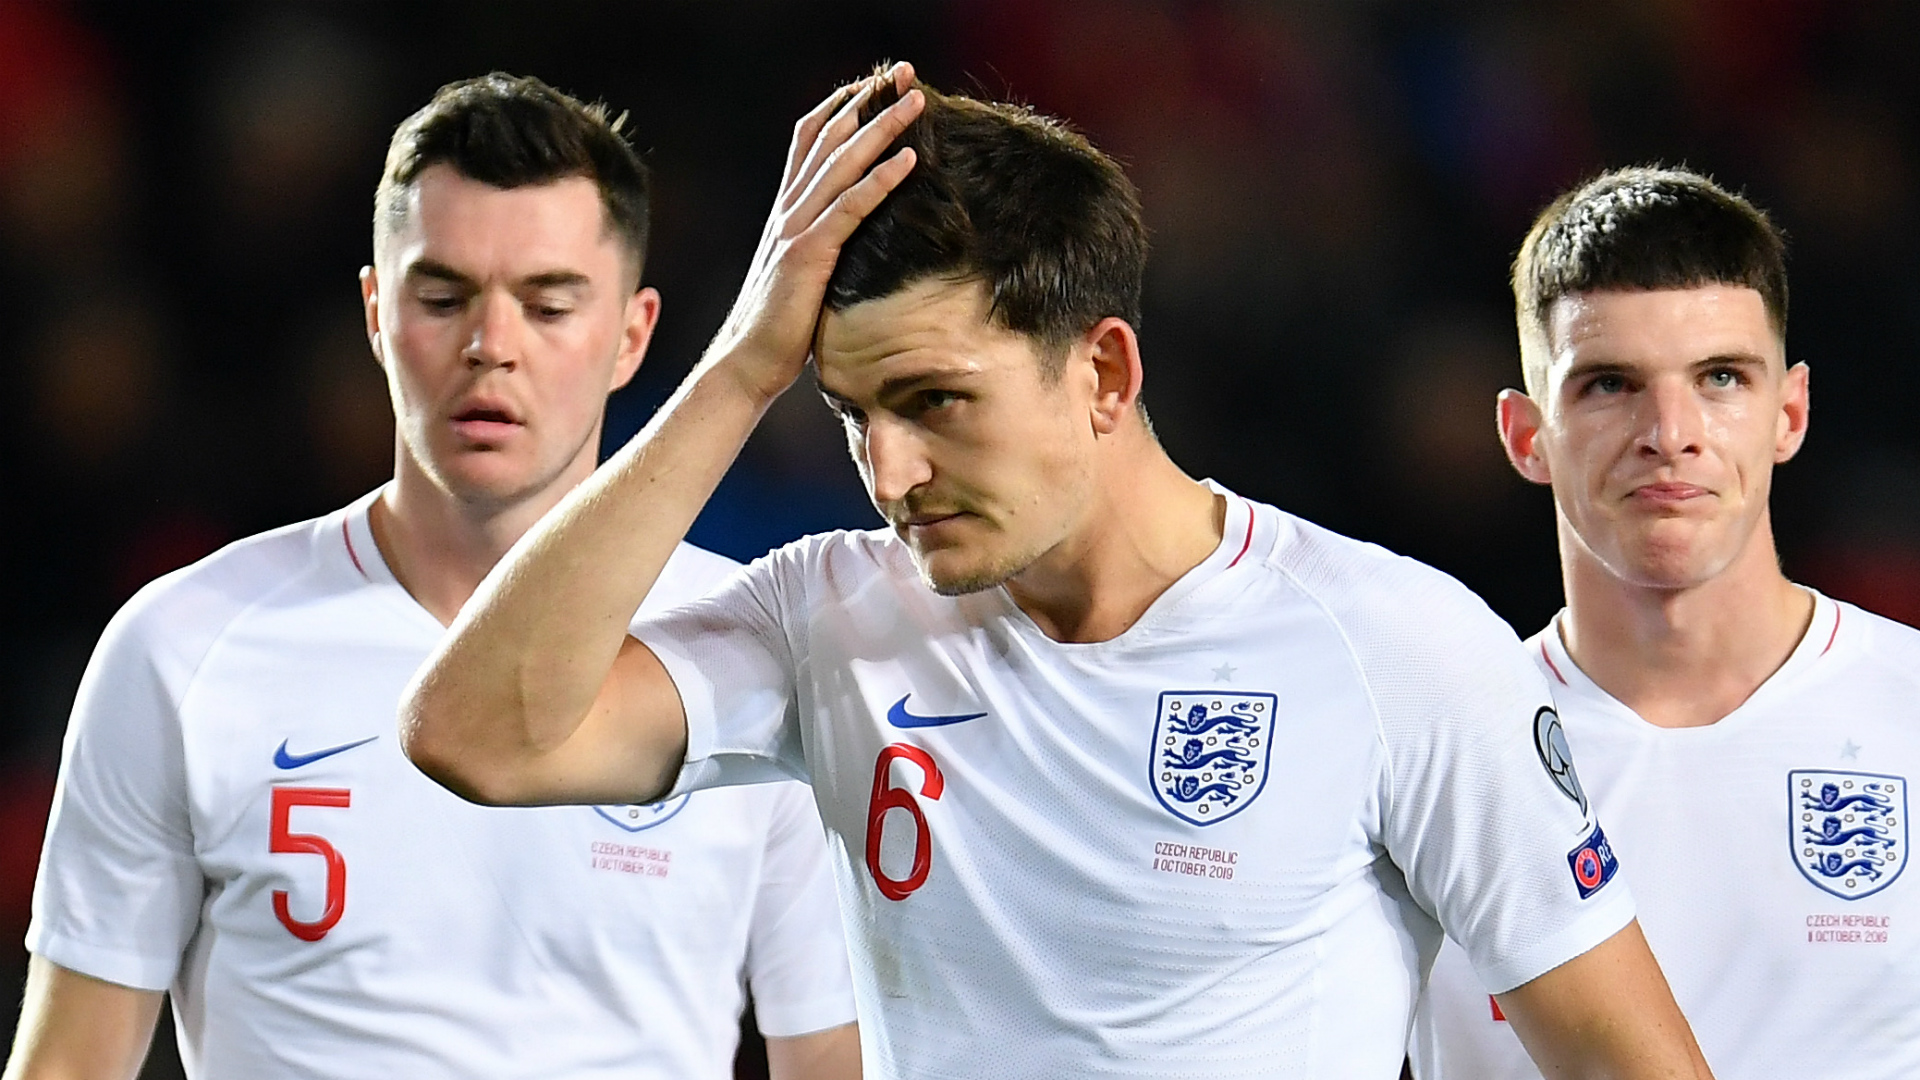 Video: Maguire dismisses suggestion of England 'cliques'